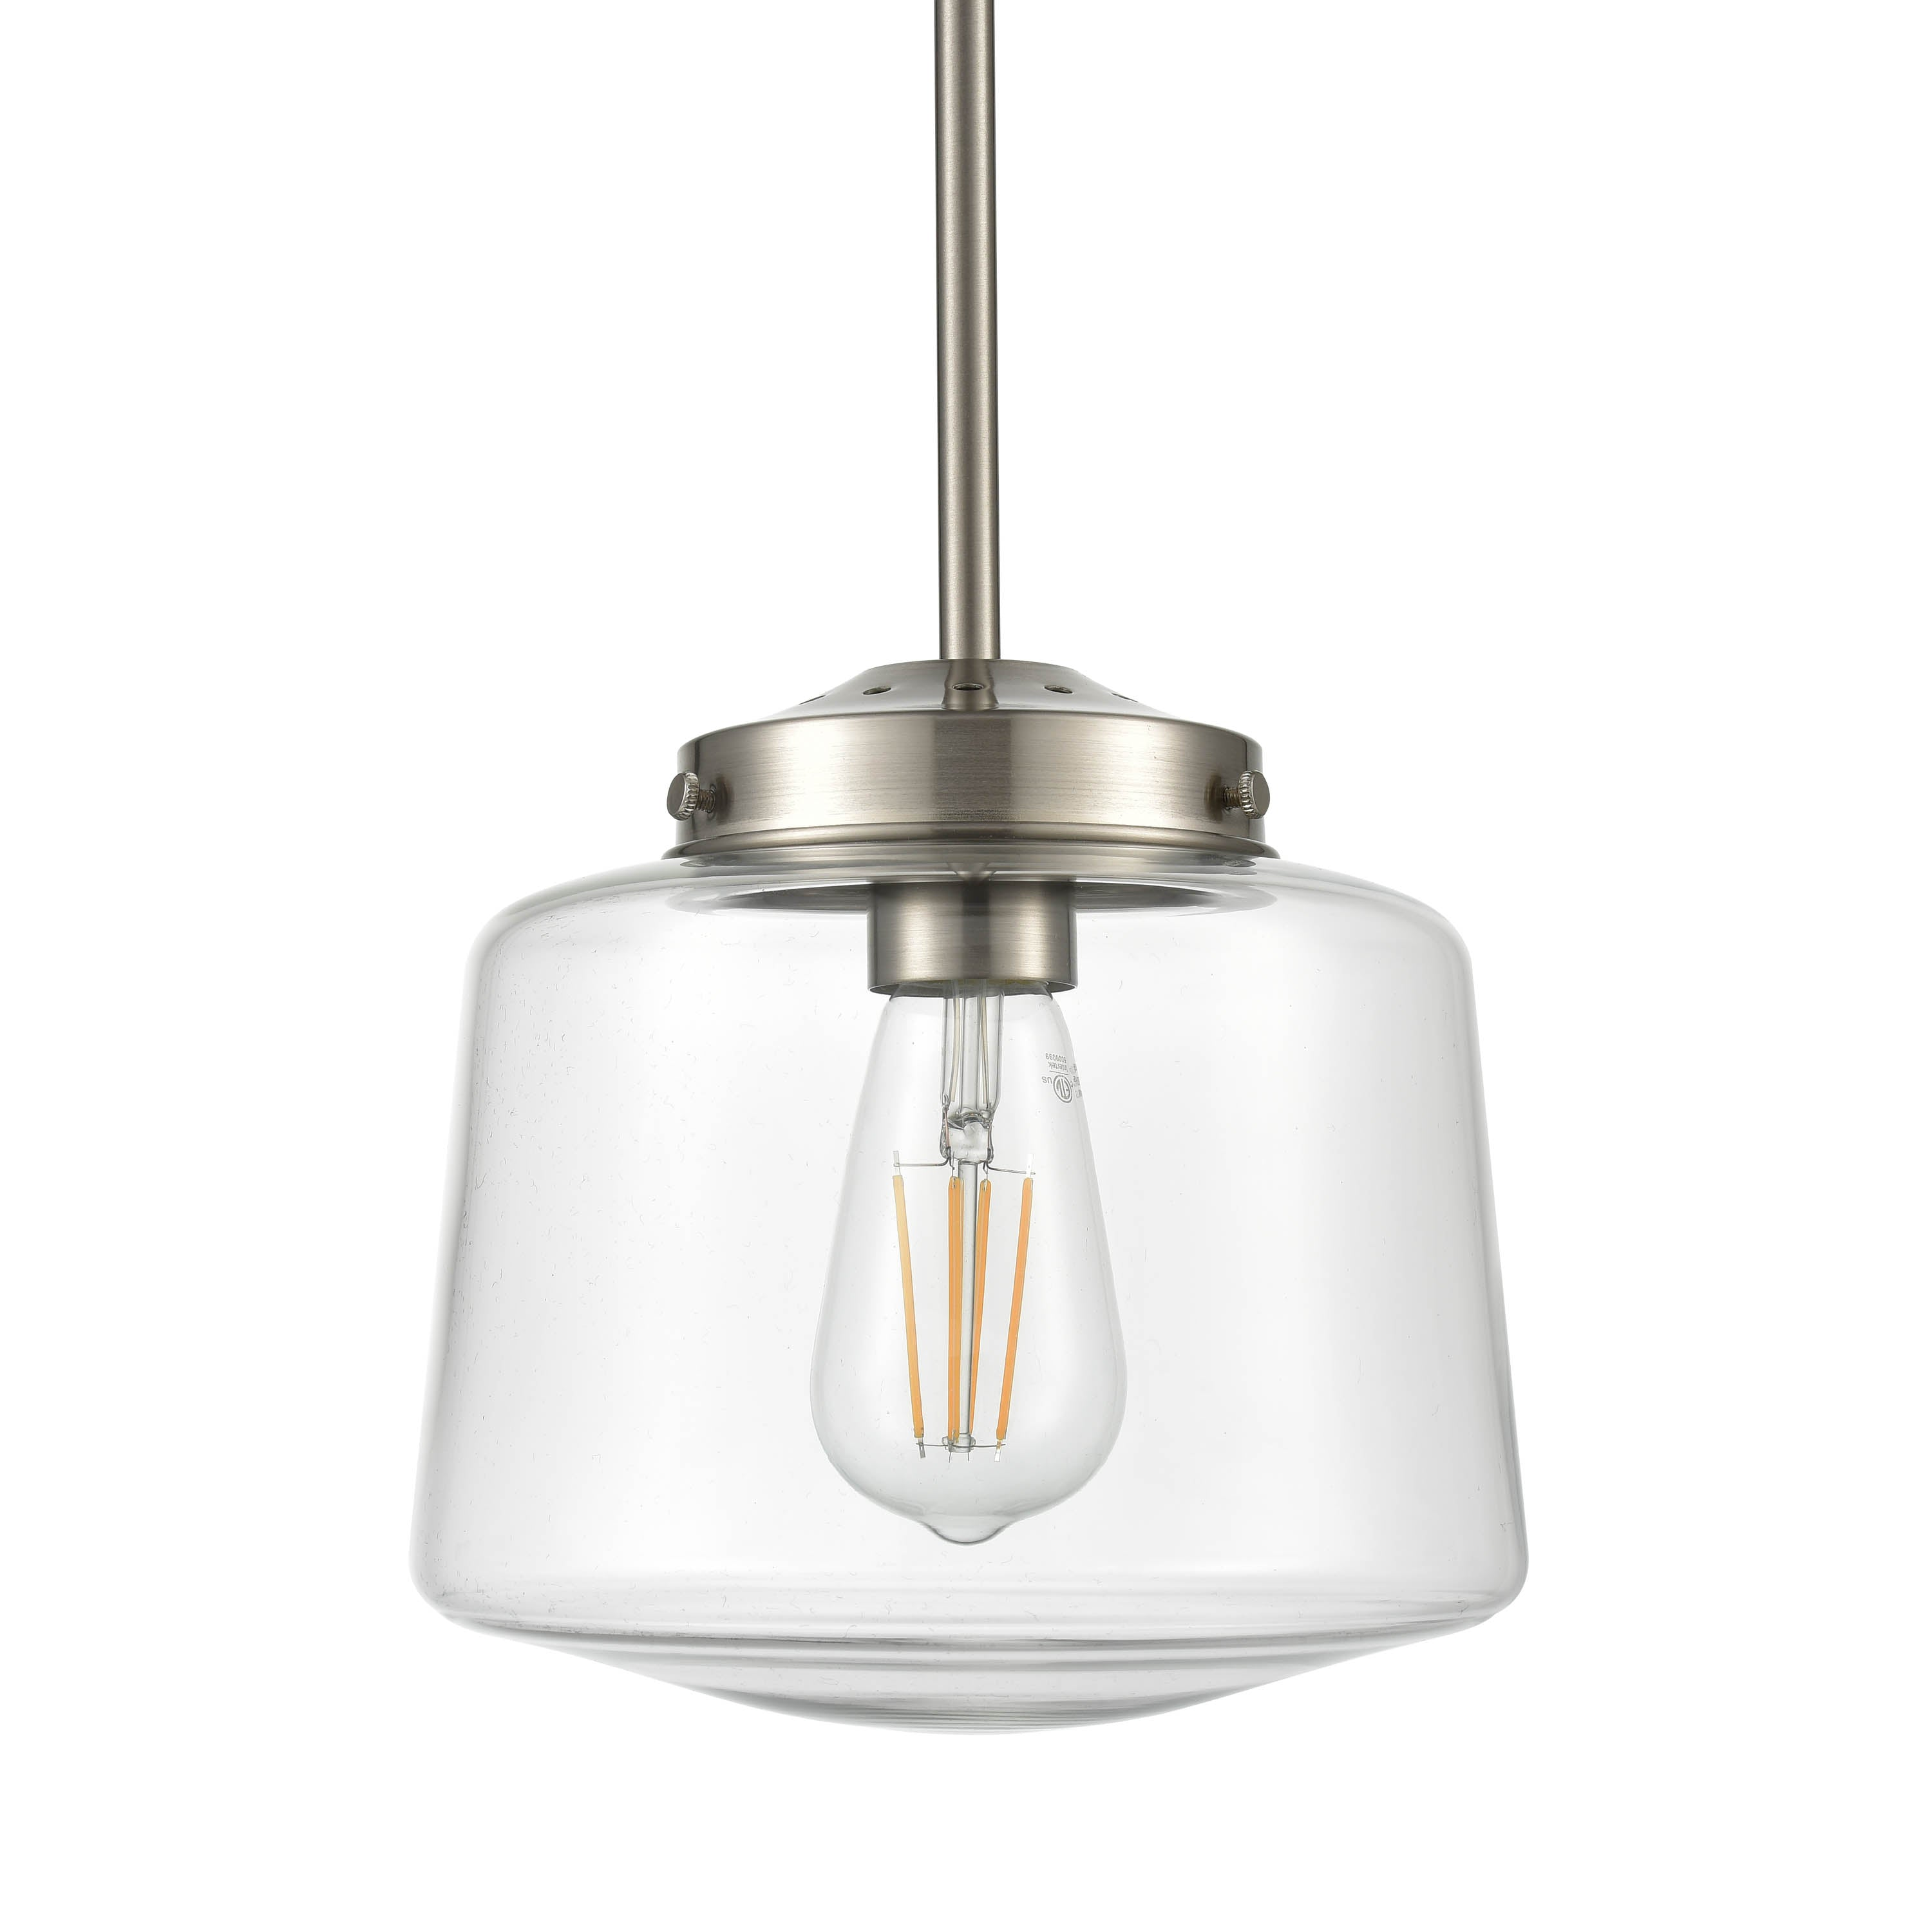 Image of: Scolare Schoolhouse Pendant Light Led Bulb Included Linea Lighting Modern And Affordable Residential Lighting